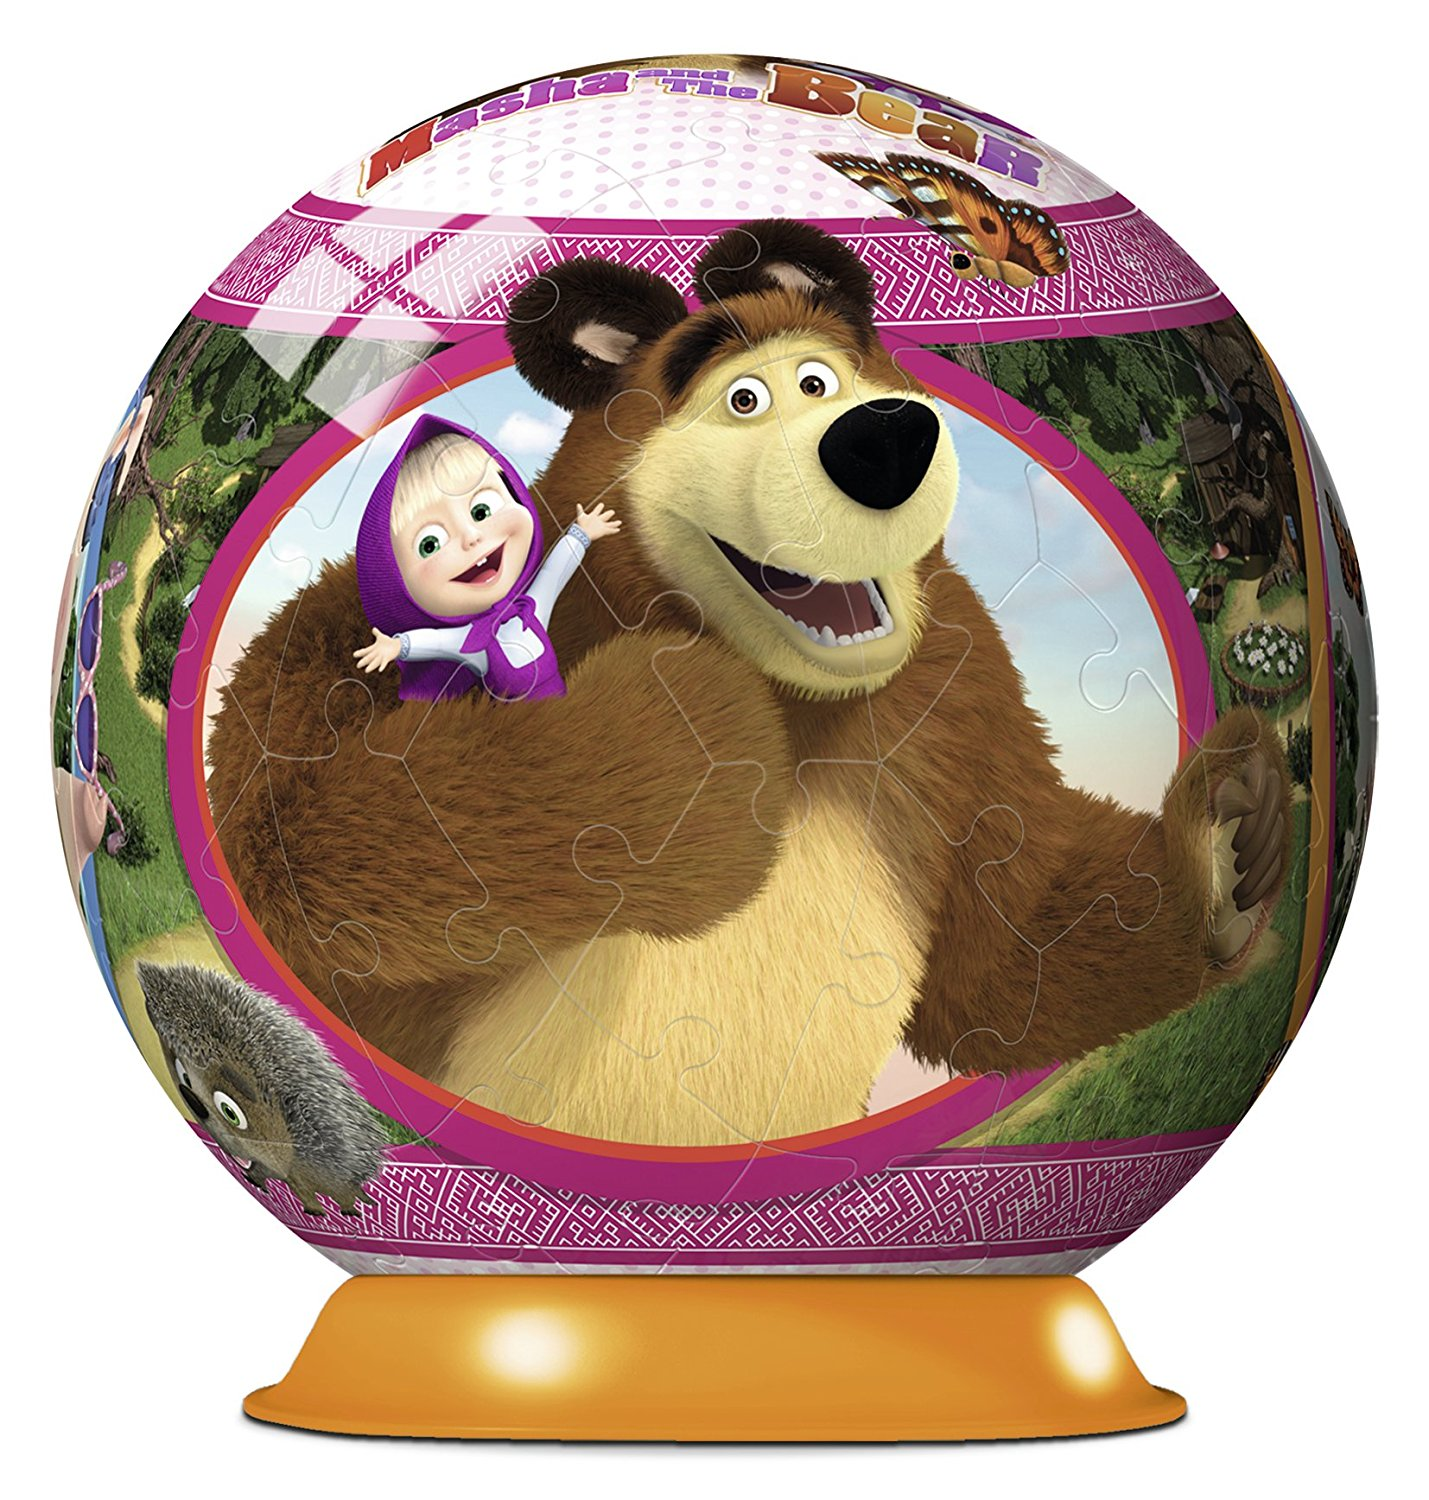 3D Puzzle - Masha and the Bear